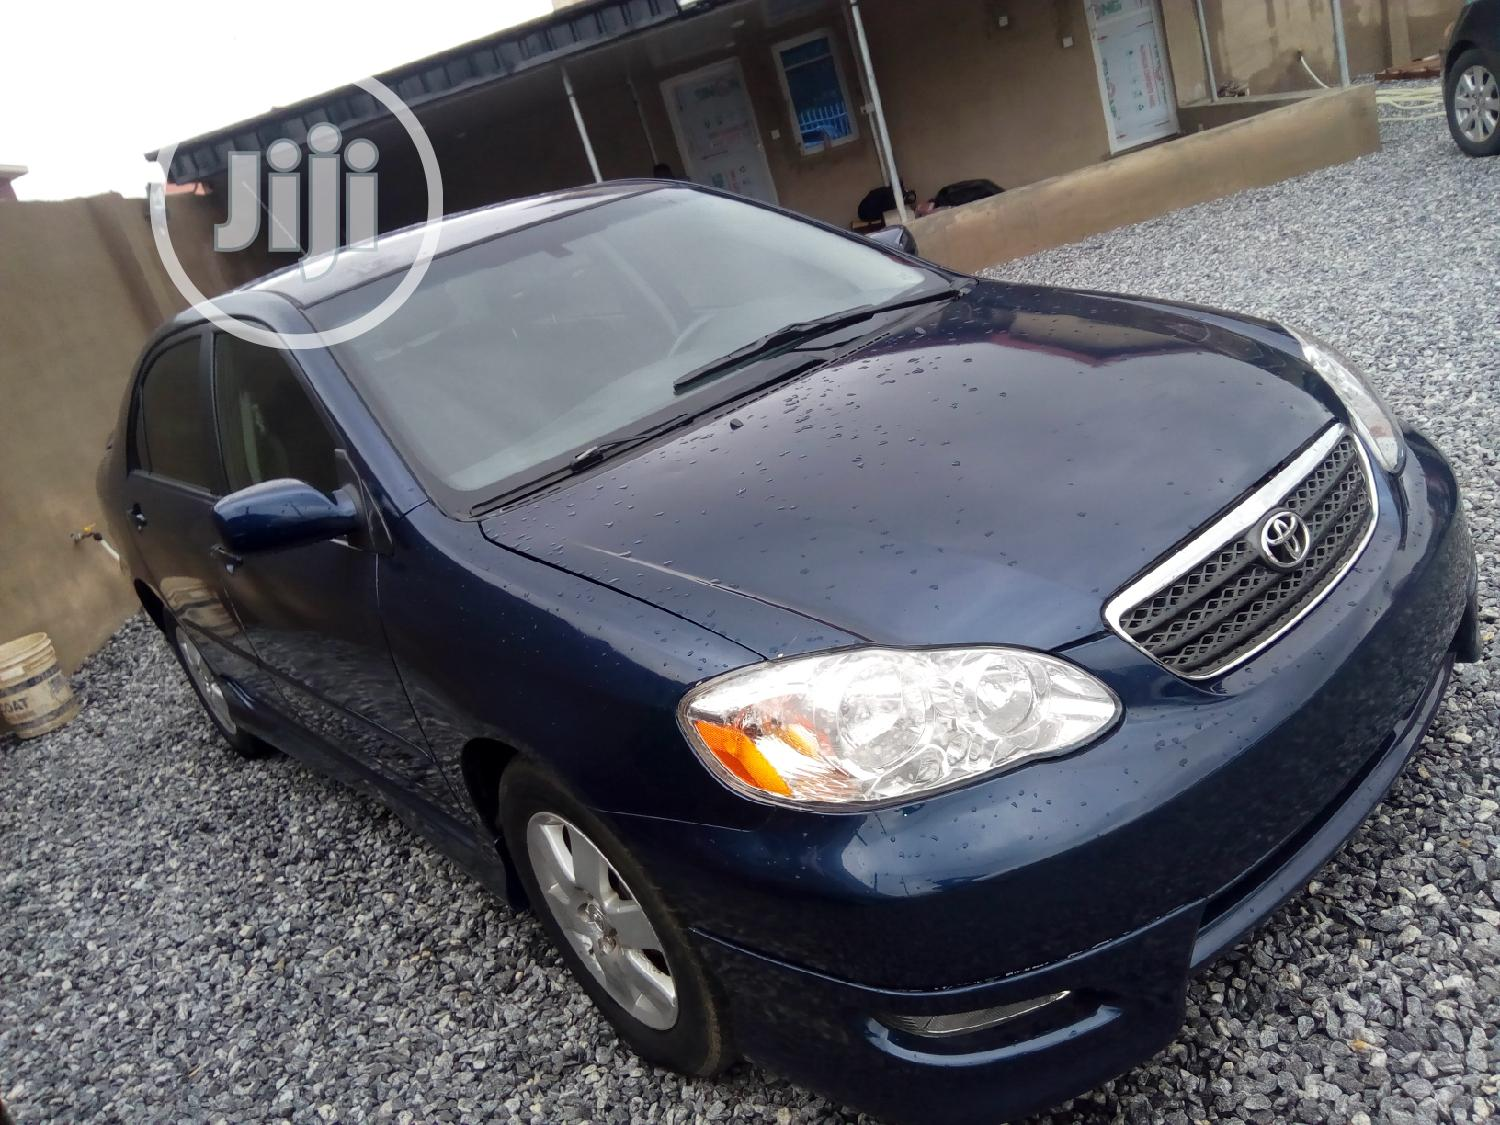 Toyota Corolla 2007 Le Blue In Magodo Cars Easygold Motors Jiji Ng For Sale In Magodo Buy Cars From Easygold Motors On Jiji Ng